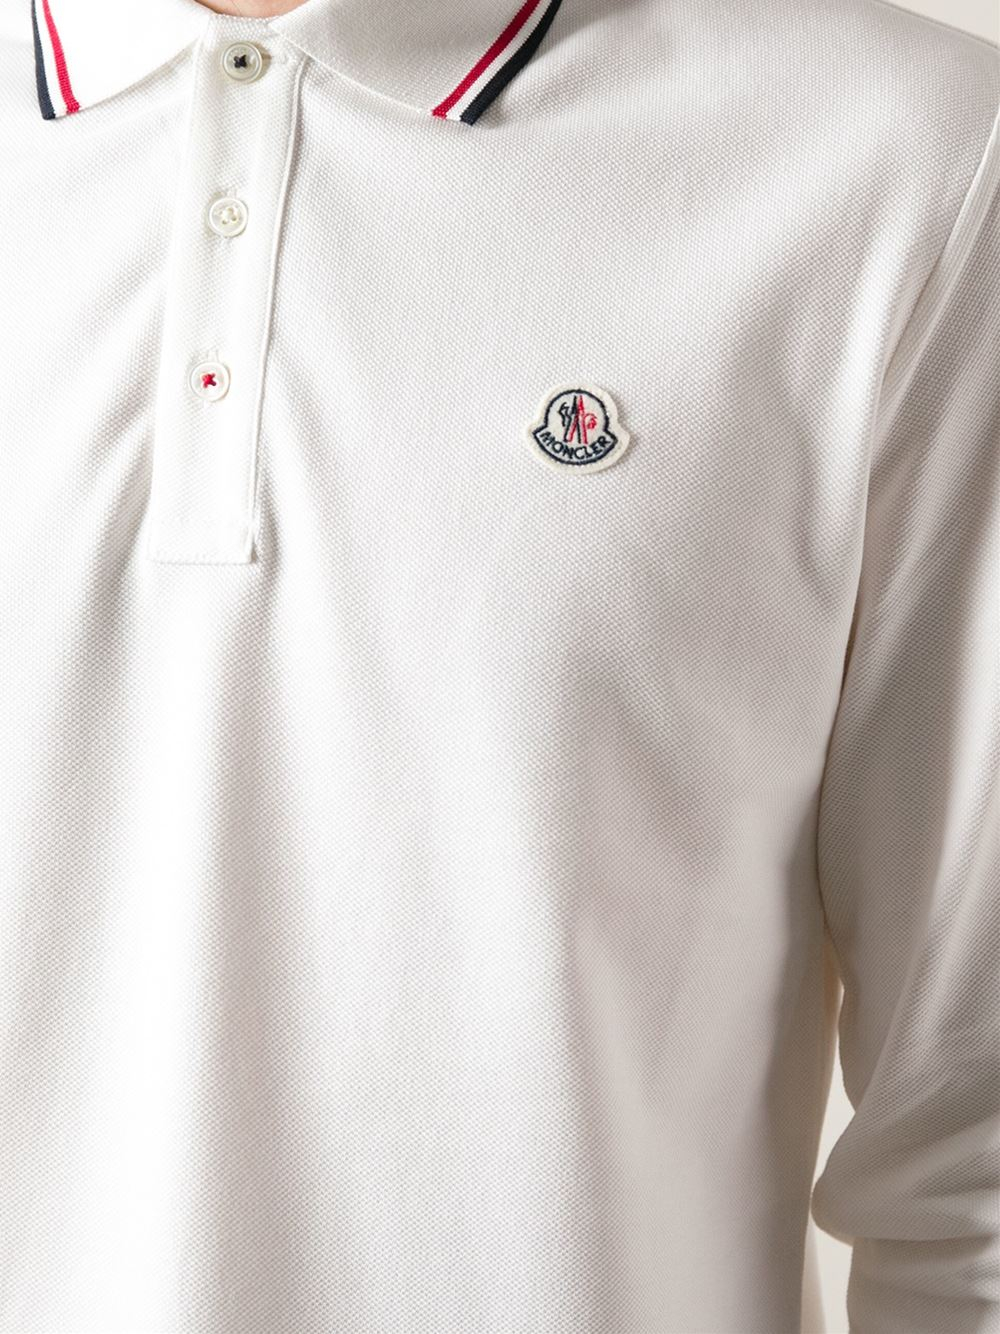 6a6b74af6c7c mens moncler long sleeve polo shirt